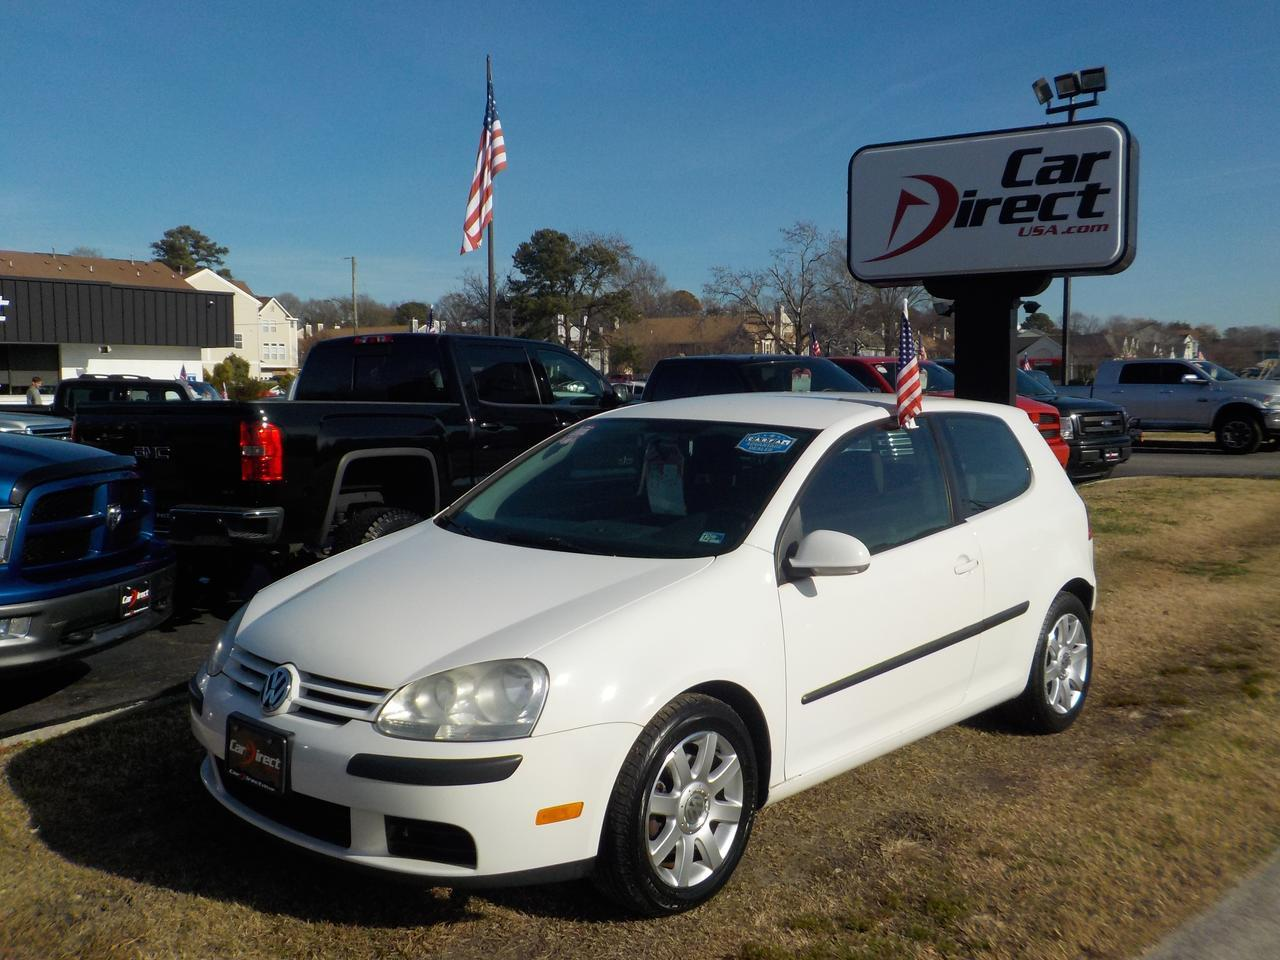 2008 VOLKSWAGEN RABBIT S HATCHBACK, WARRANTY, DAYTIME RUNNING LIGHTS, KEYLESS ENTRY, CRUISE CONTROL, POWER MIRRORS!